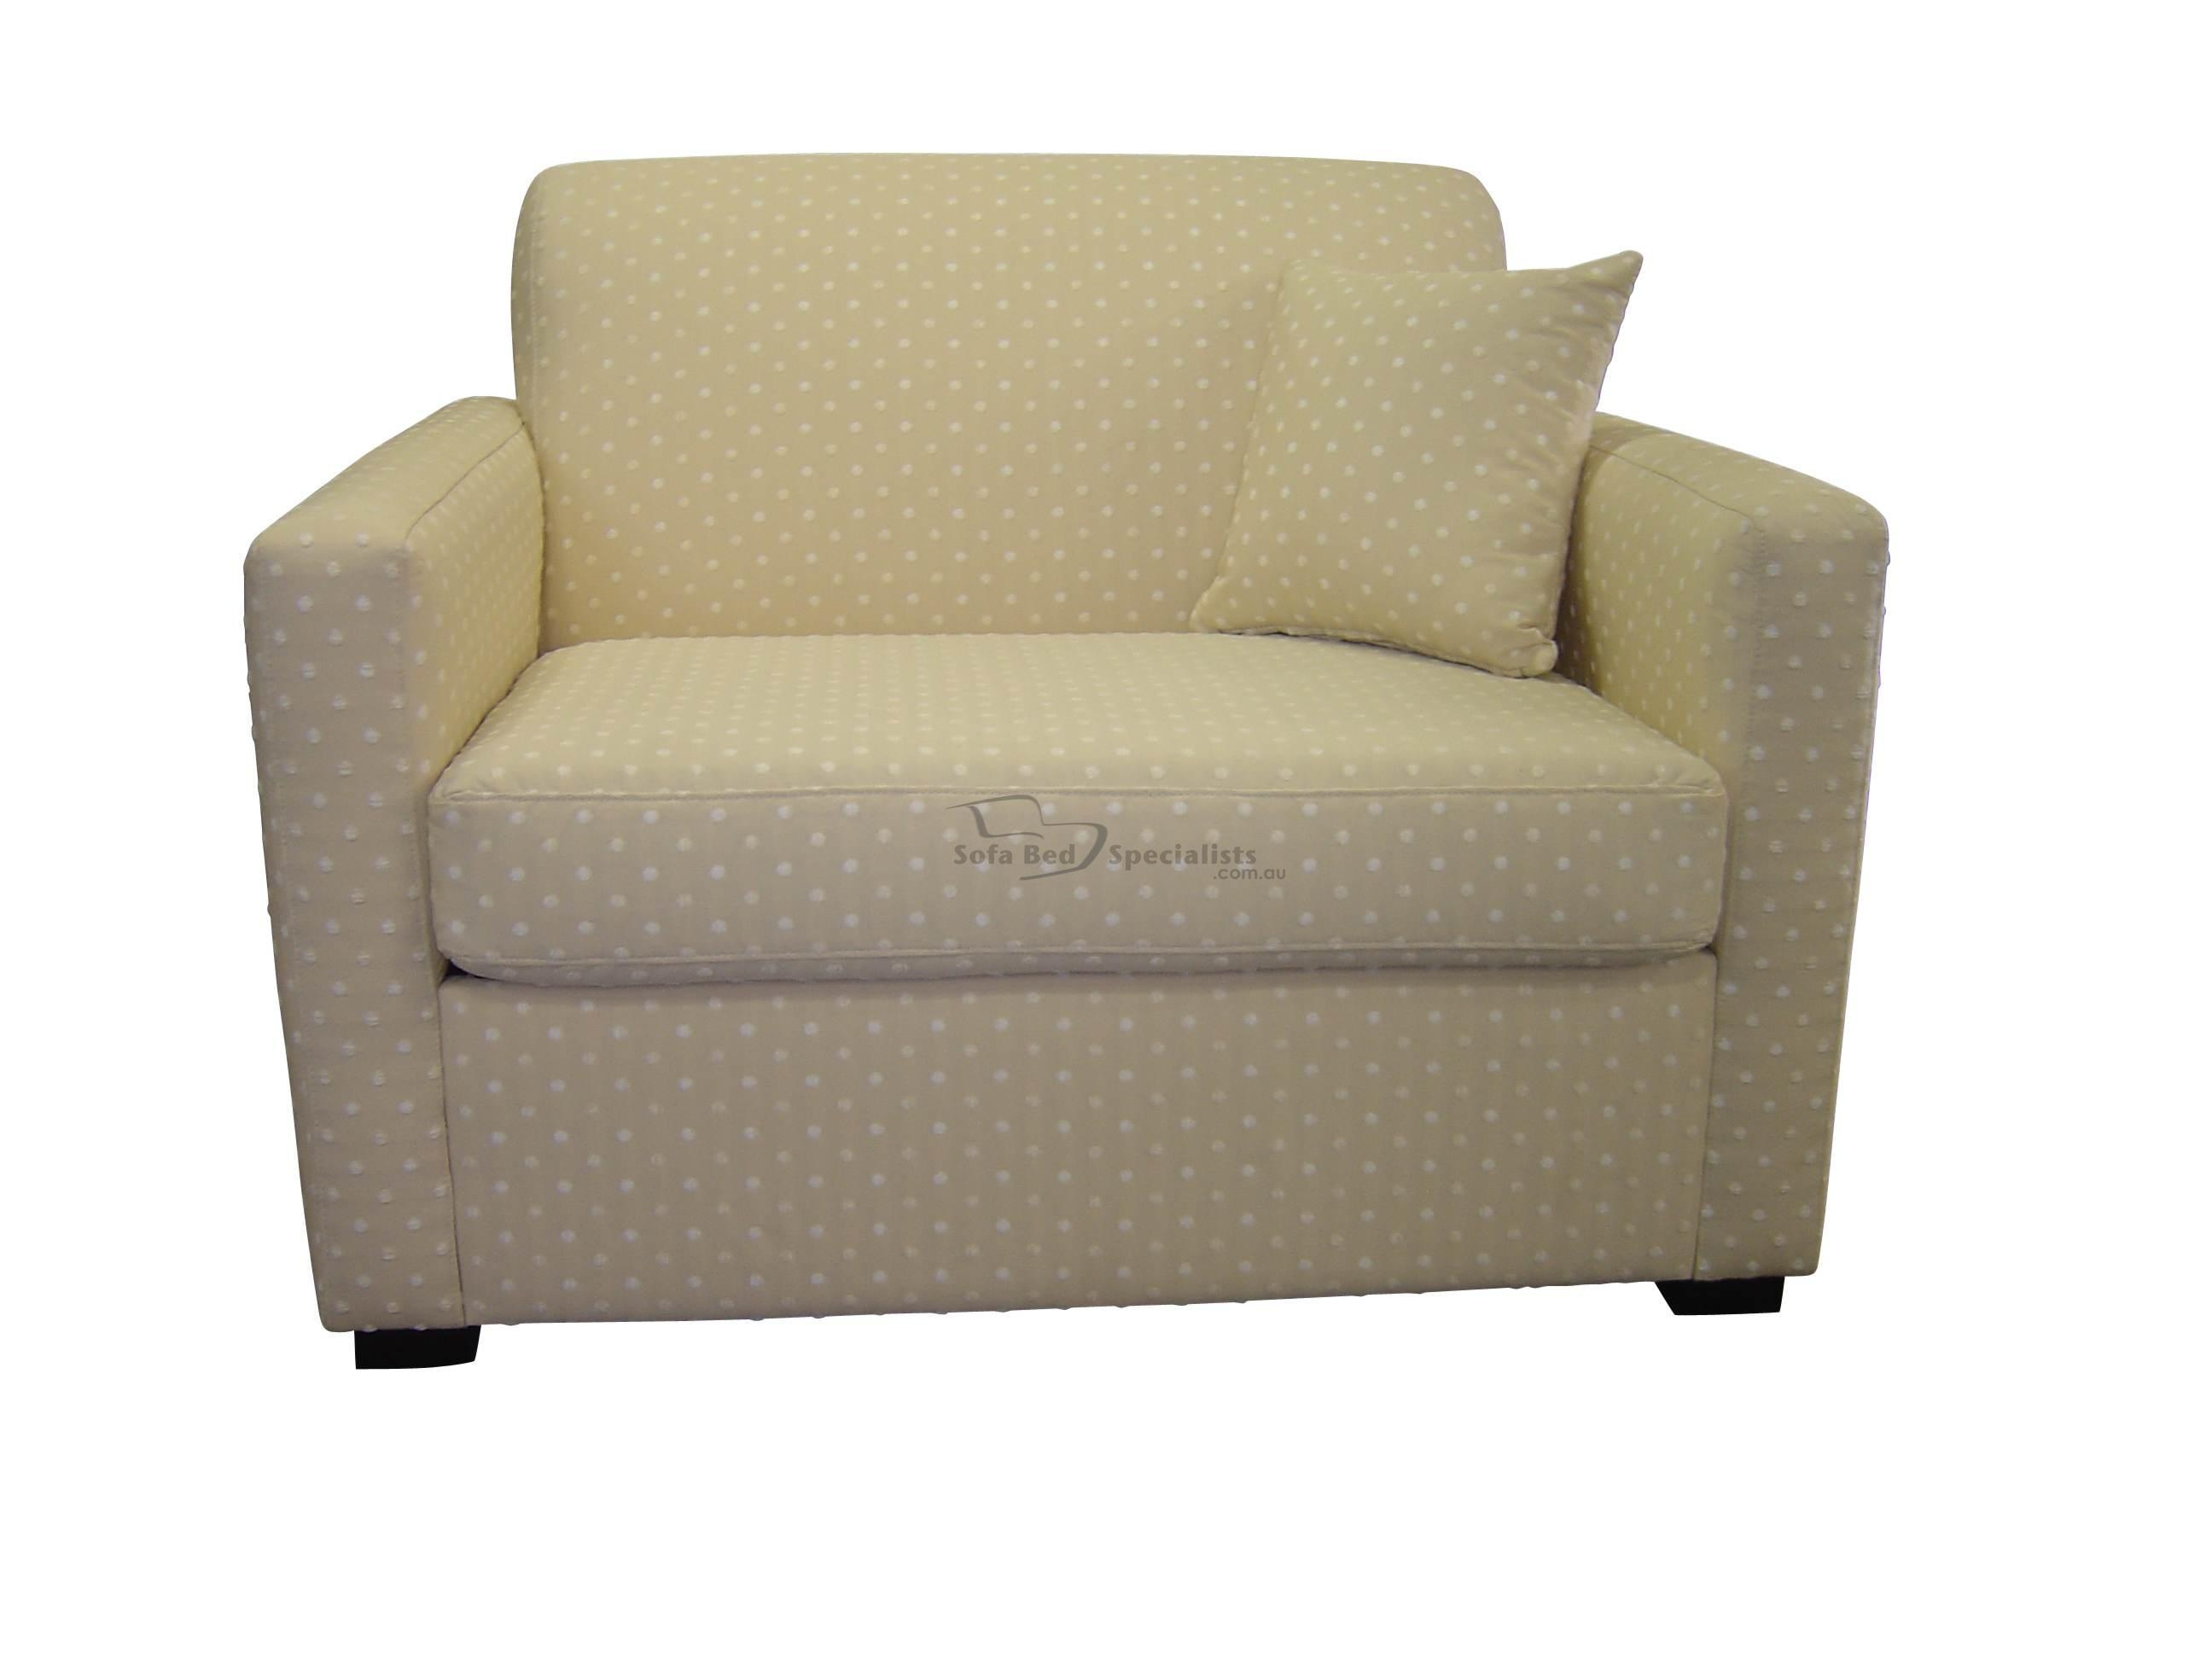 Chair Sofabed Bowman – Sofa Bed Specialists Intended For Single Chair Sofa Beds (Image 3 of 22)